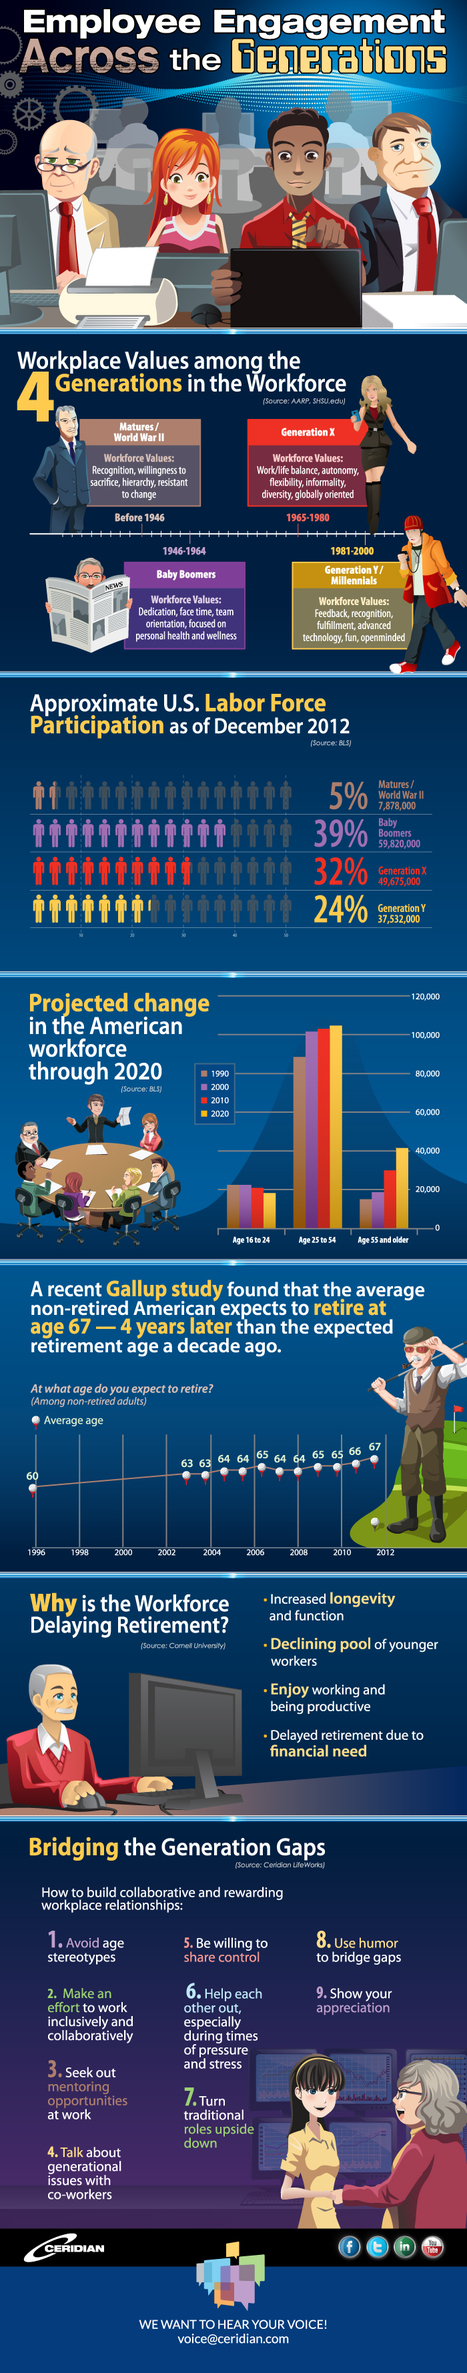 Infographic: Employee Engagement Across the Gen...   Employee Engagement Made Easy!   Scoop.it